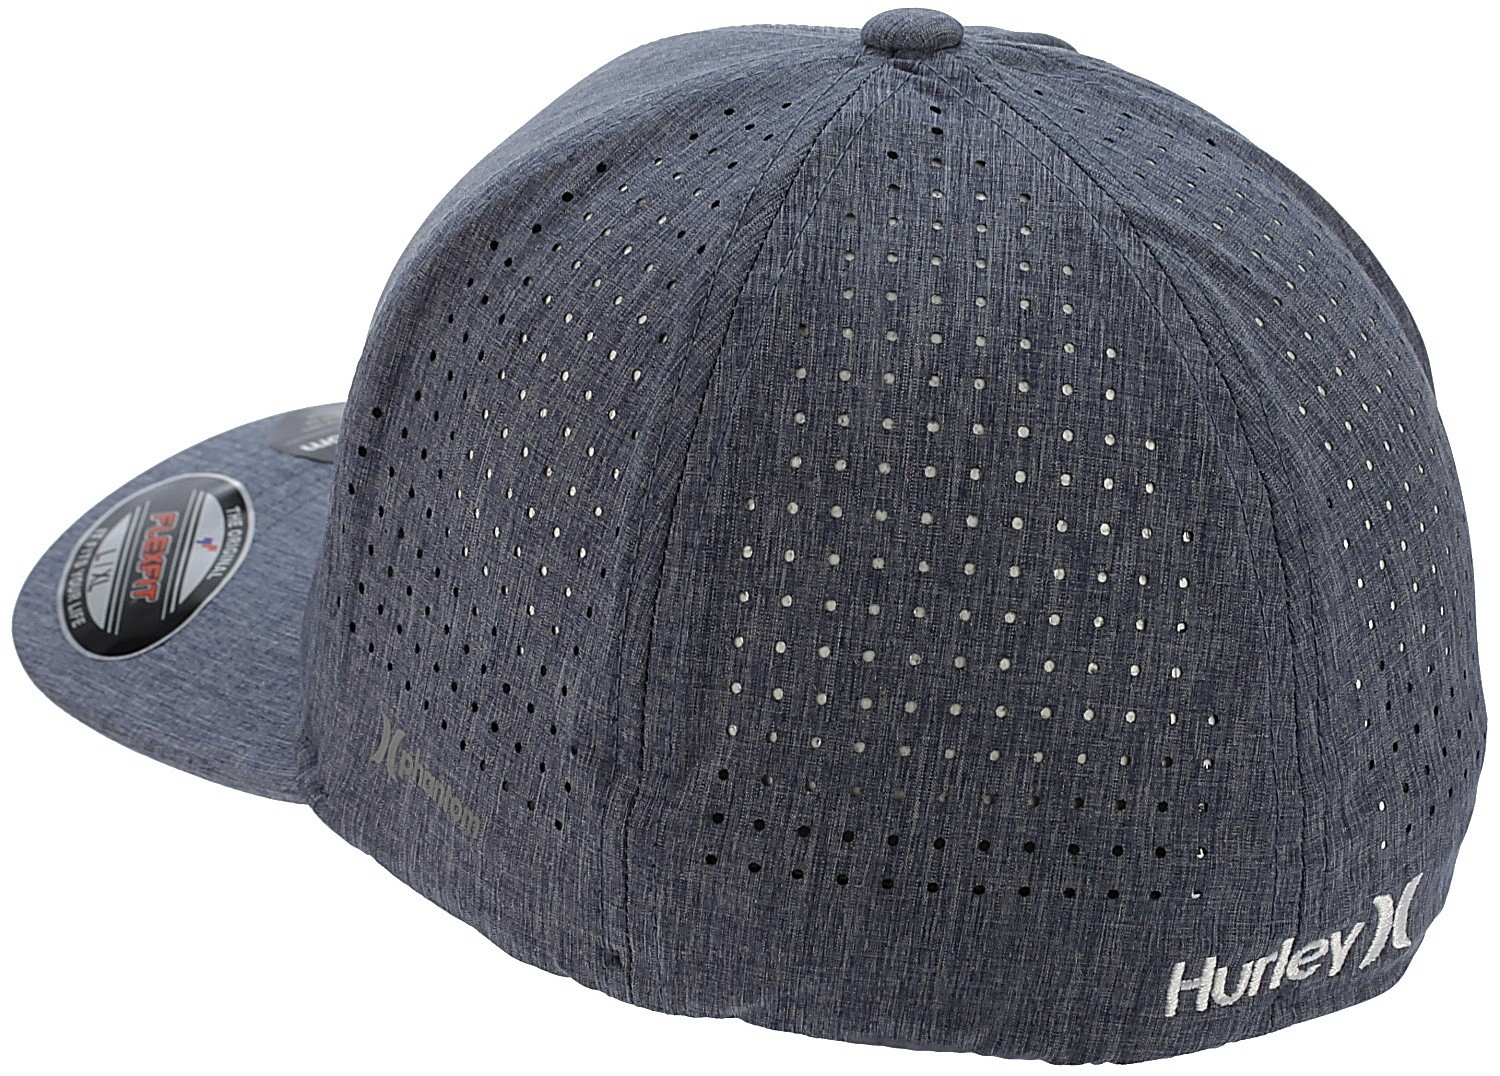 newest collection 5519a c61c8 ... discount cap hurley phantom 4.0 flexfit 451 obsidian white. no longer  available. 5dda8 e1256